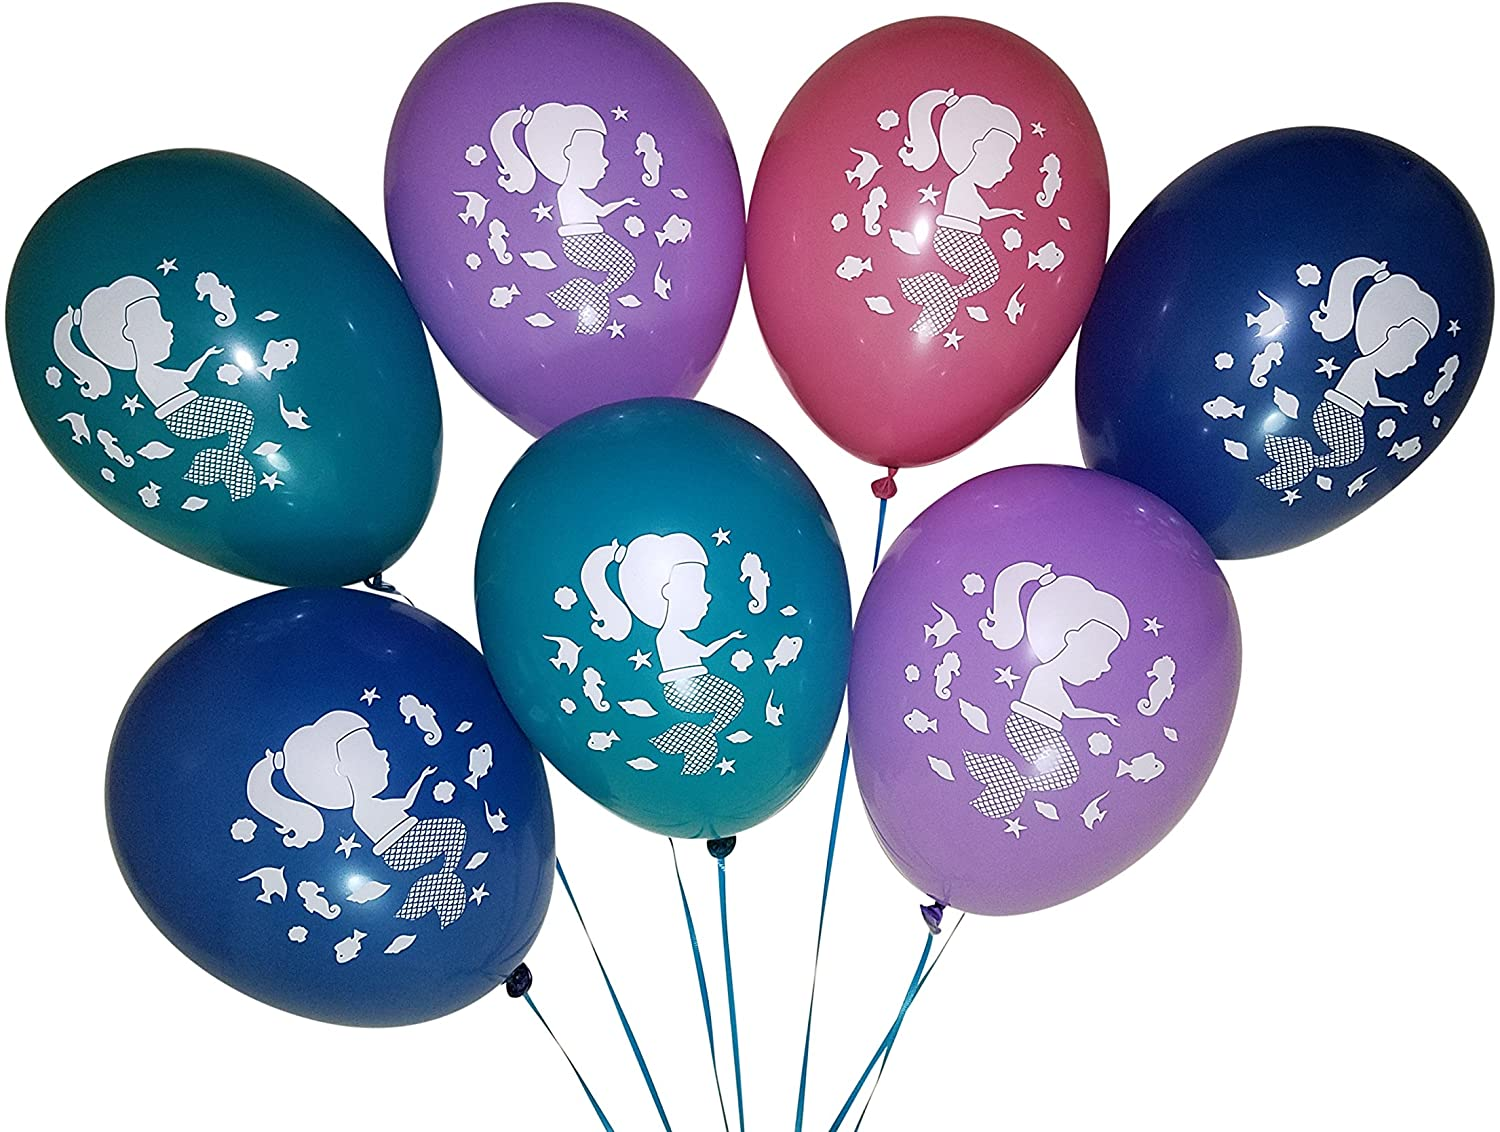 Mermaid Balloons for Birthday Party or Under The Sea Theme – 25 Pack – Blue, Teal, Pink, Lavender